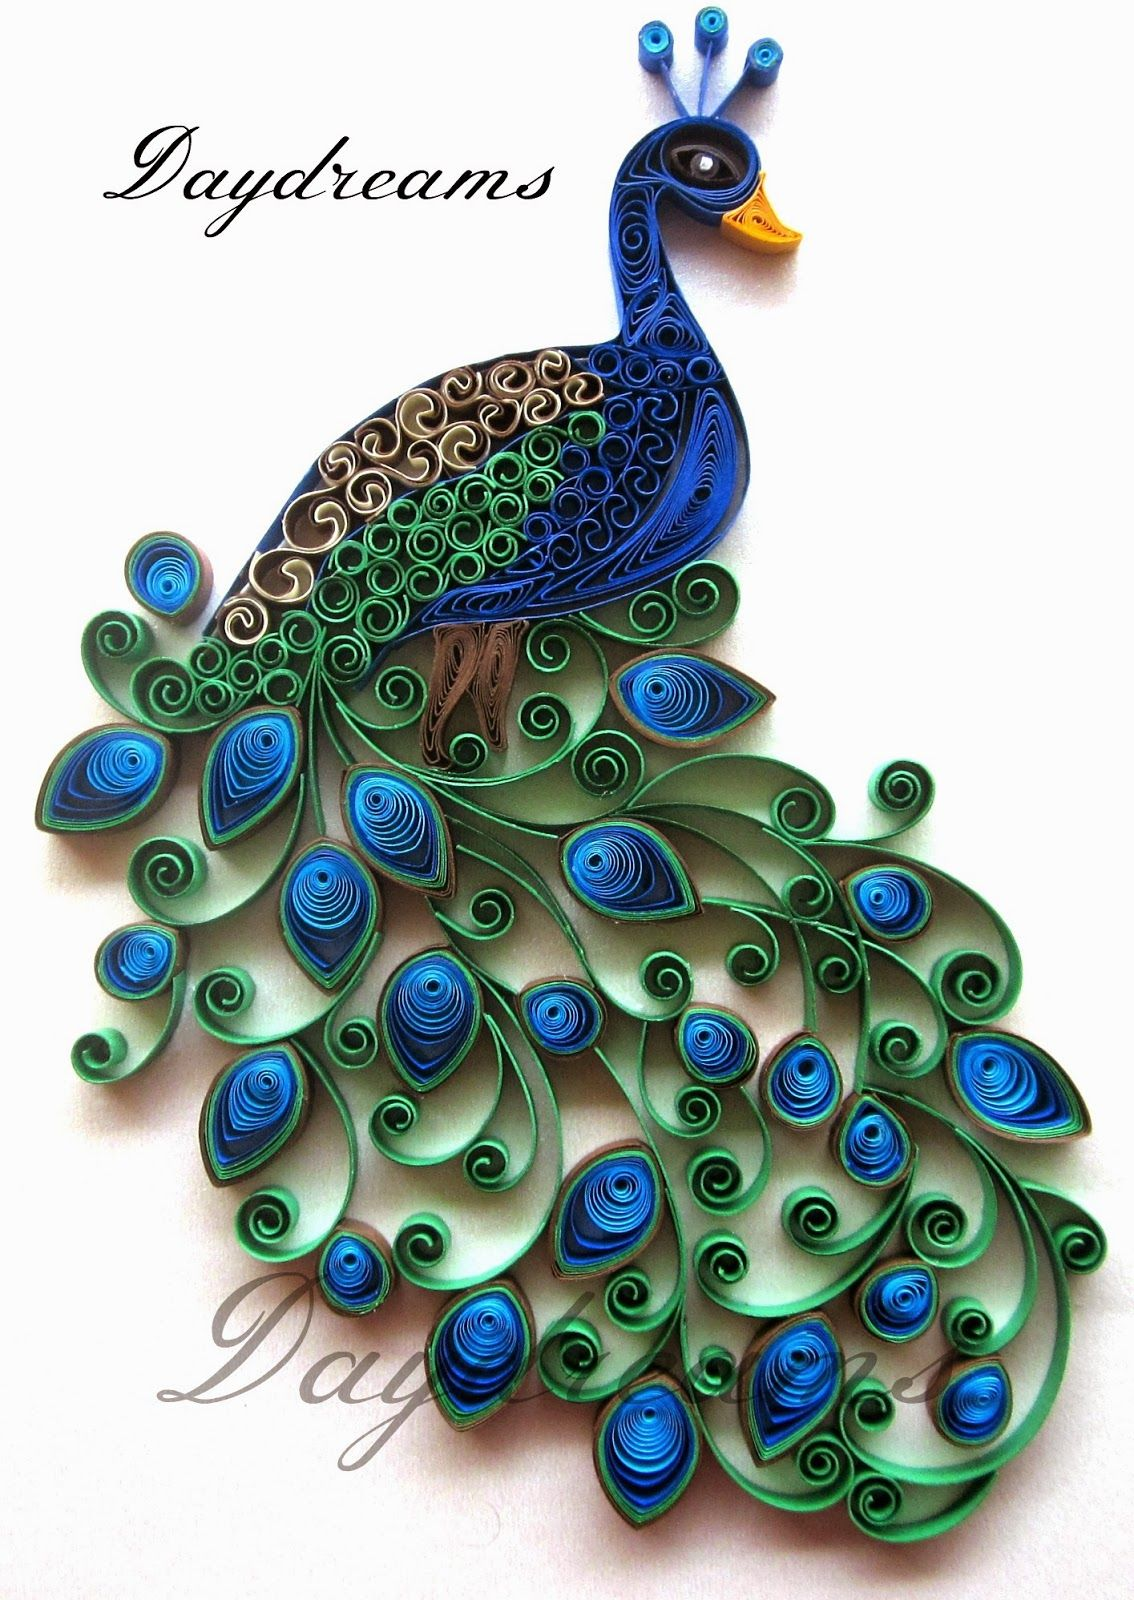 Daydreams quilled peacock embroidery design inspired for Paper quilling designs